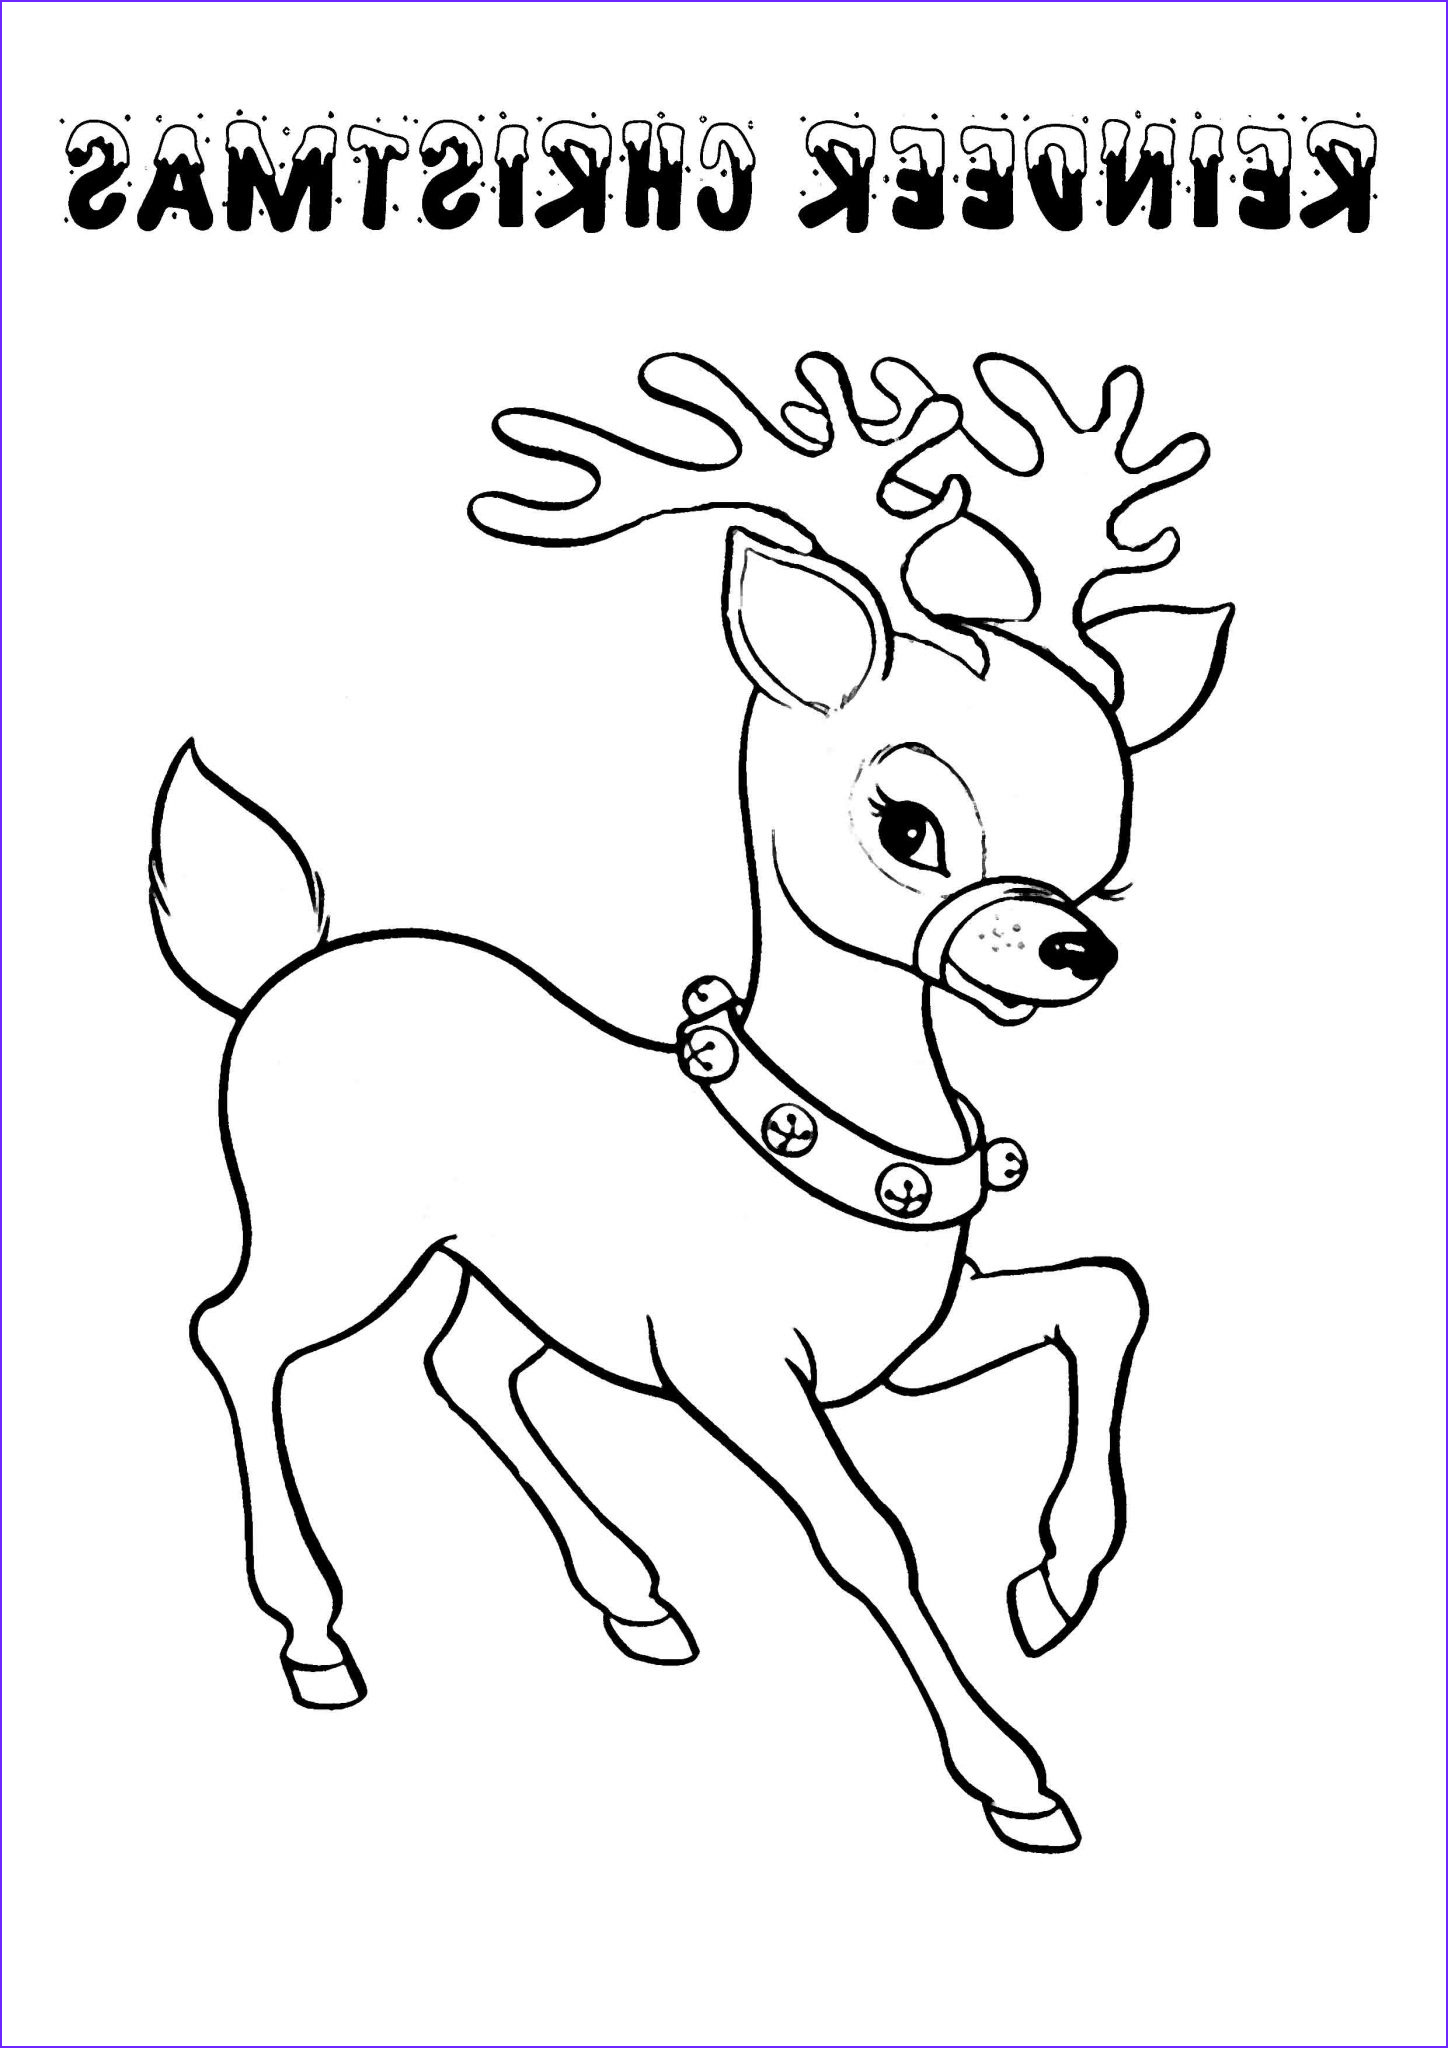 Coloring Pages Christmas New Stock Print & Download Printable Christmas Coloring Pages for Kids